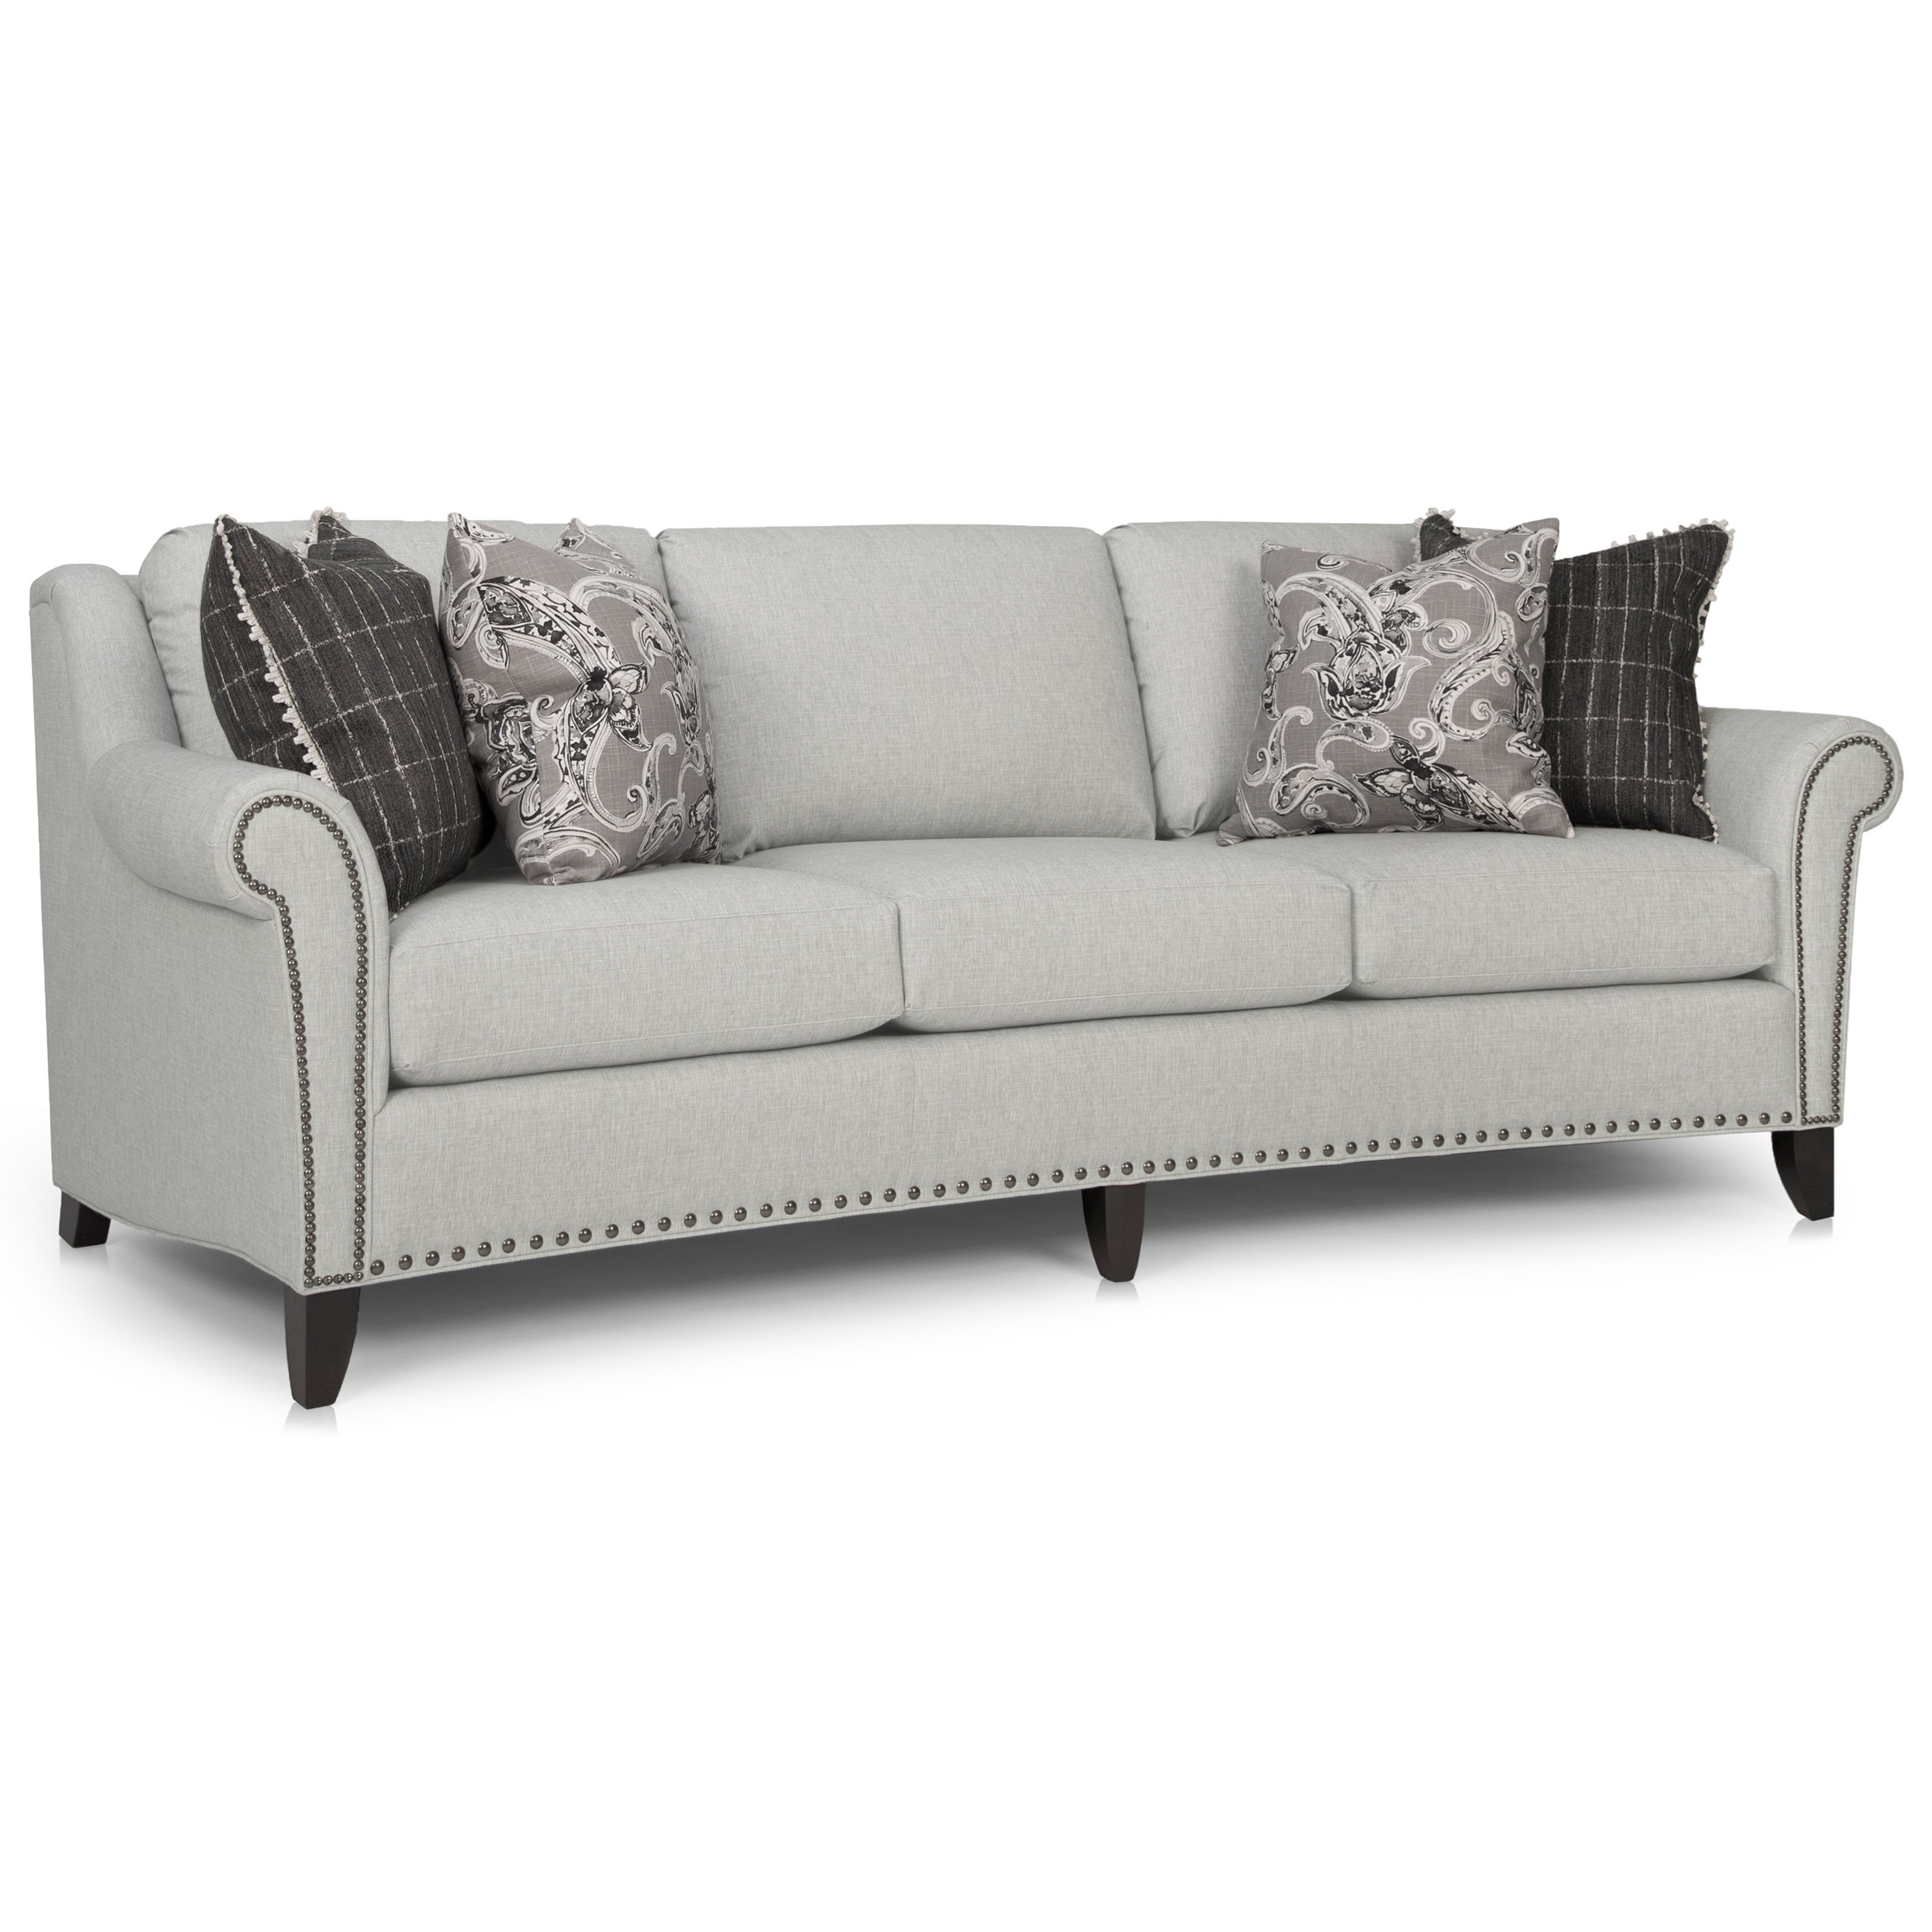 Smith Brothers 249 Transitional Large Sofa With Nailhead